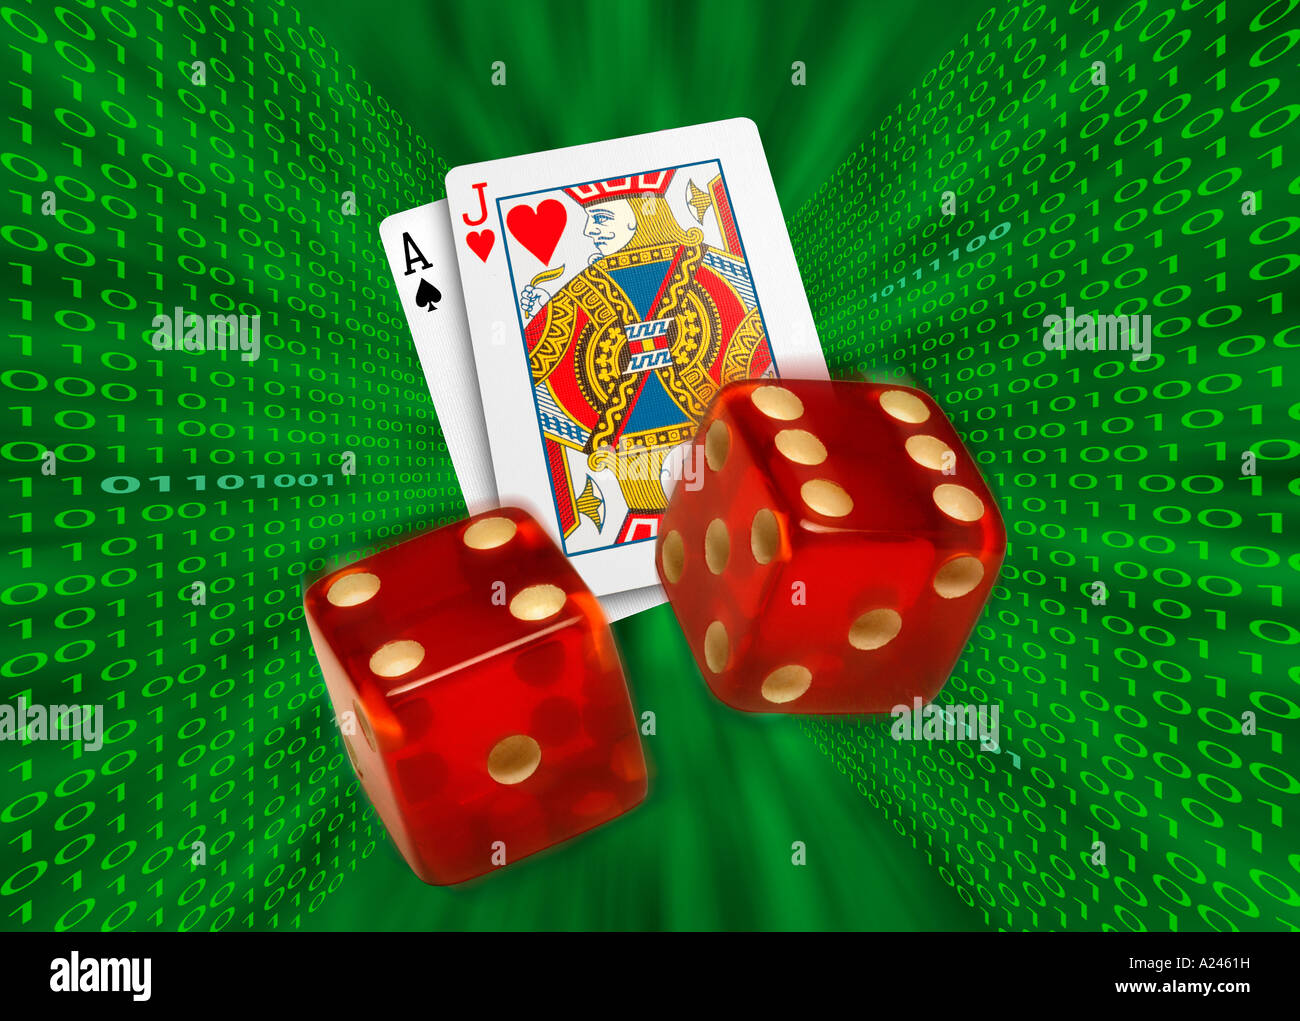 Cards and dice flying through a binary green vortex representing online Internet gambling - Stock Image